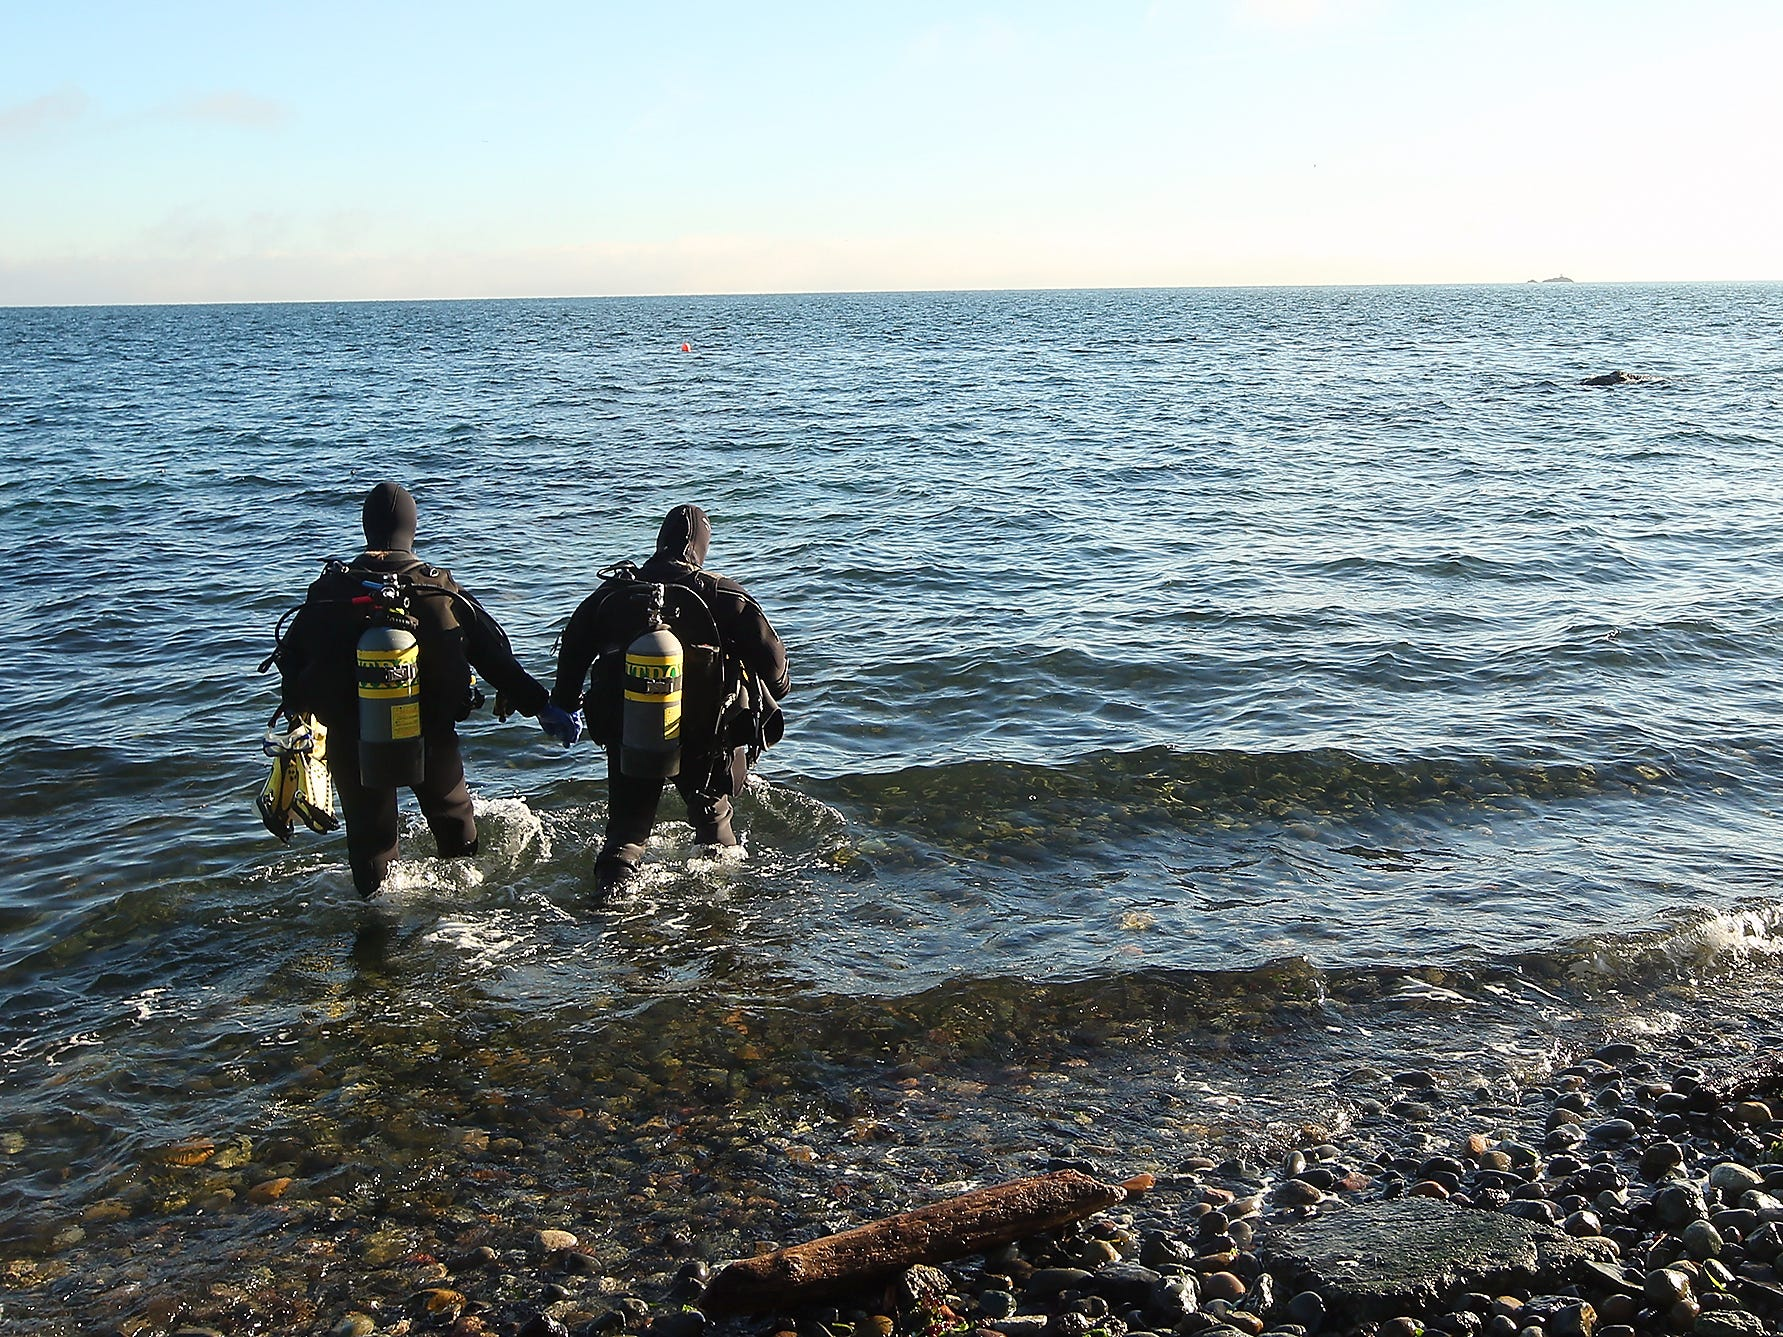 Scuba divers Jackie Wood and Rick Hatten hold hands as they enter the water at Bainbridge Island's Rockaway Beach on Monday, December 31, 2018.